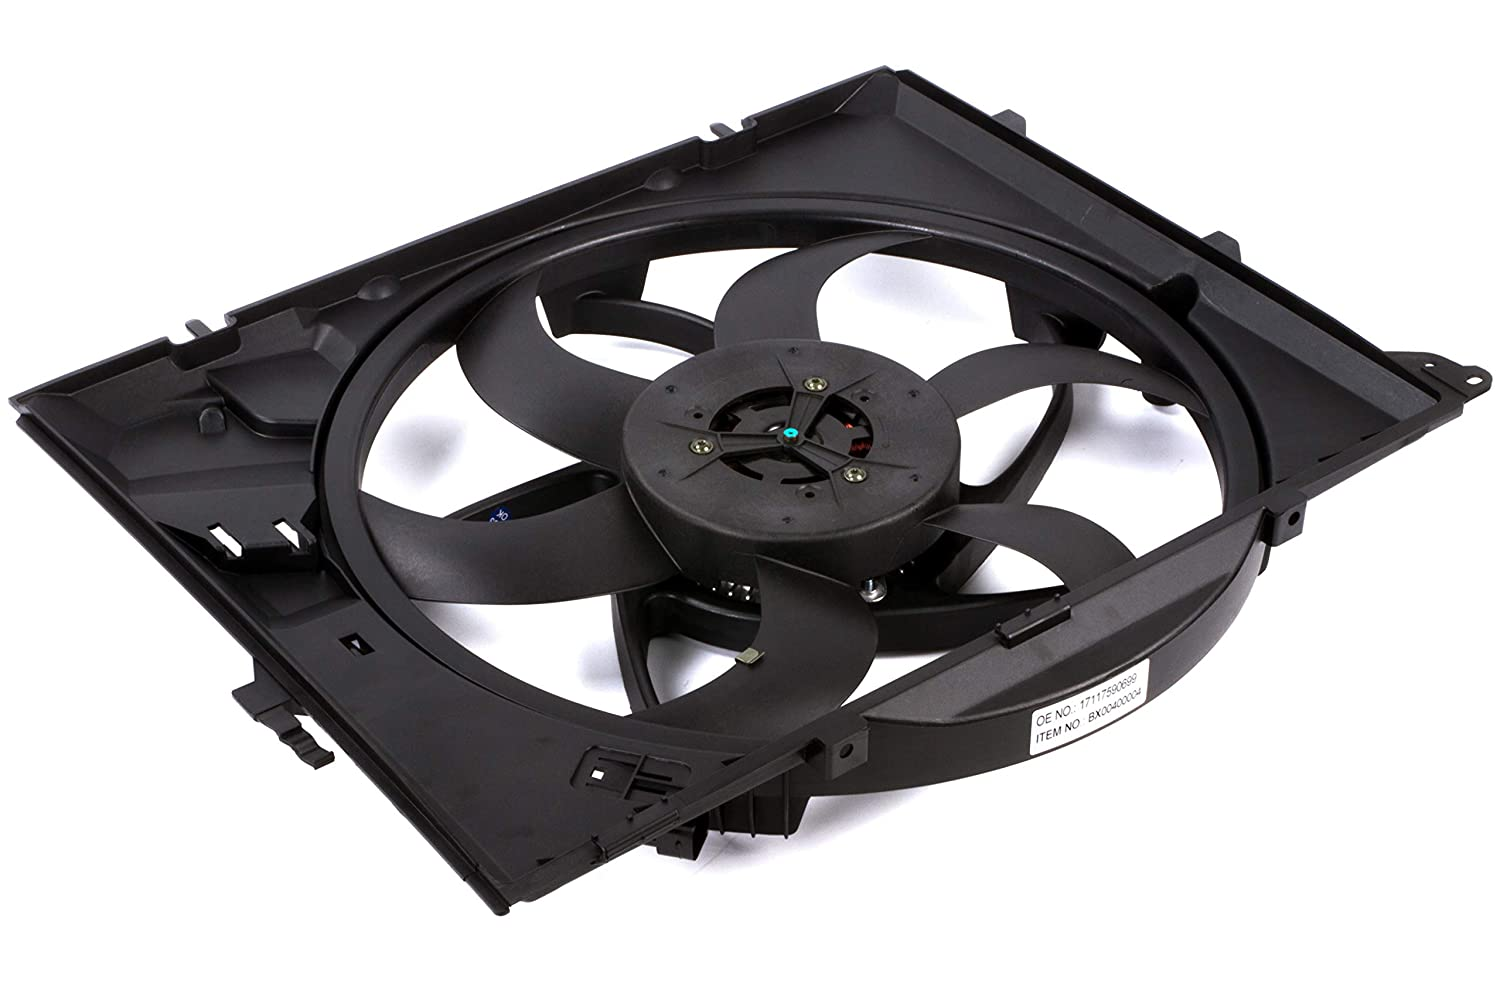 BOXI 400 Watts Engine Cooling Fan Assembly with Auto Transmission For BMW E90 128i 325i 325xi 328i 328i xDrive 328xi 330i 330xi Z4 17427523259,17117590699